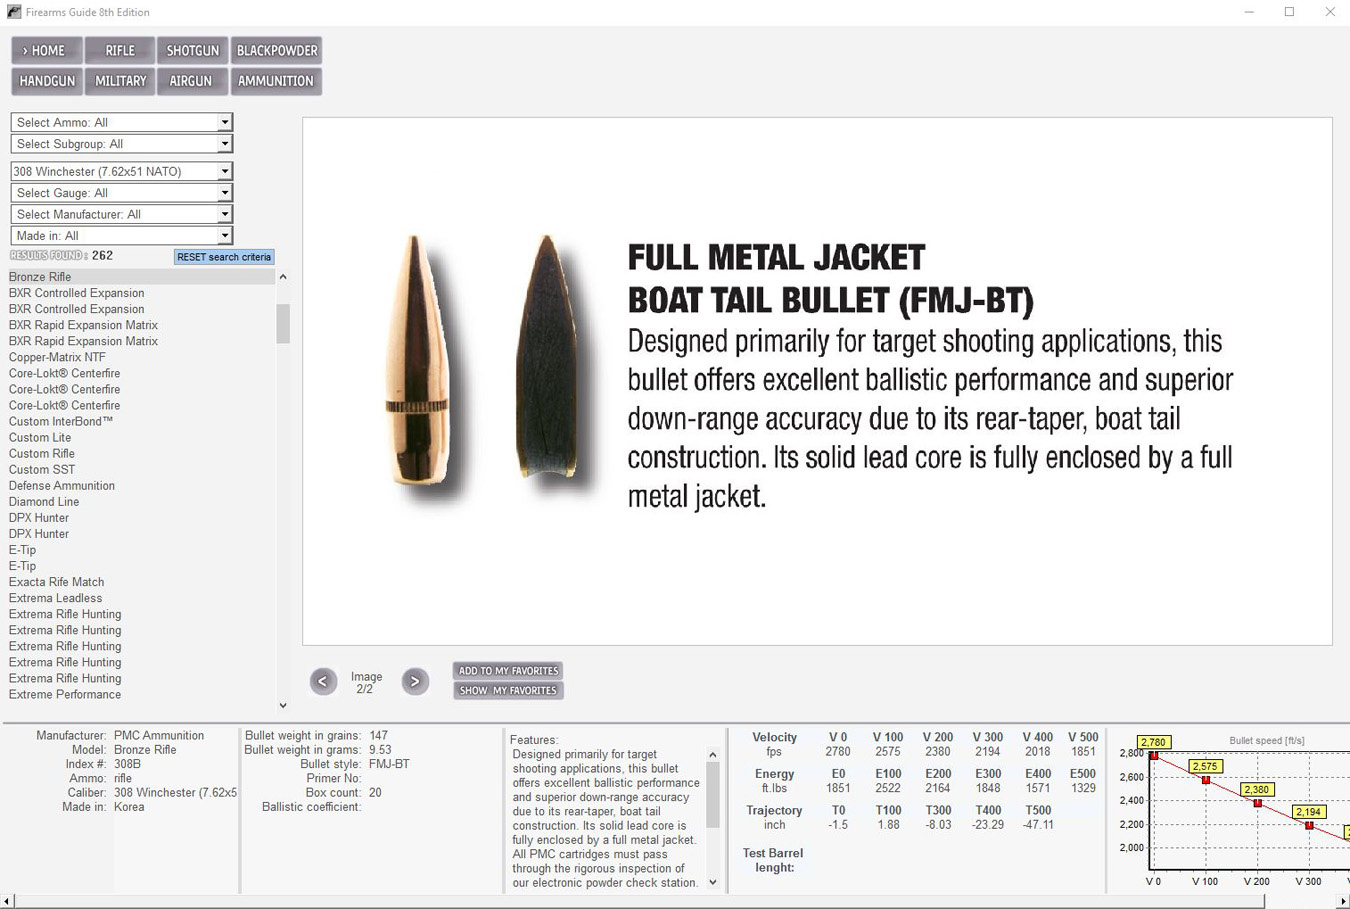 Firearms Guide ammunition schematic